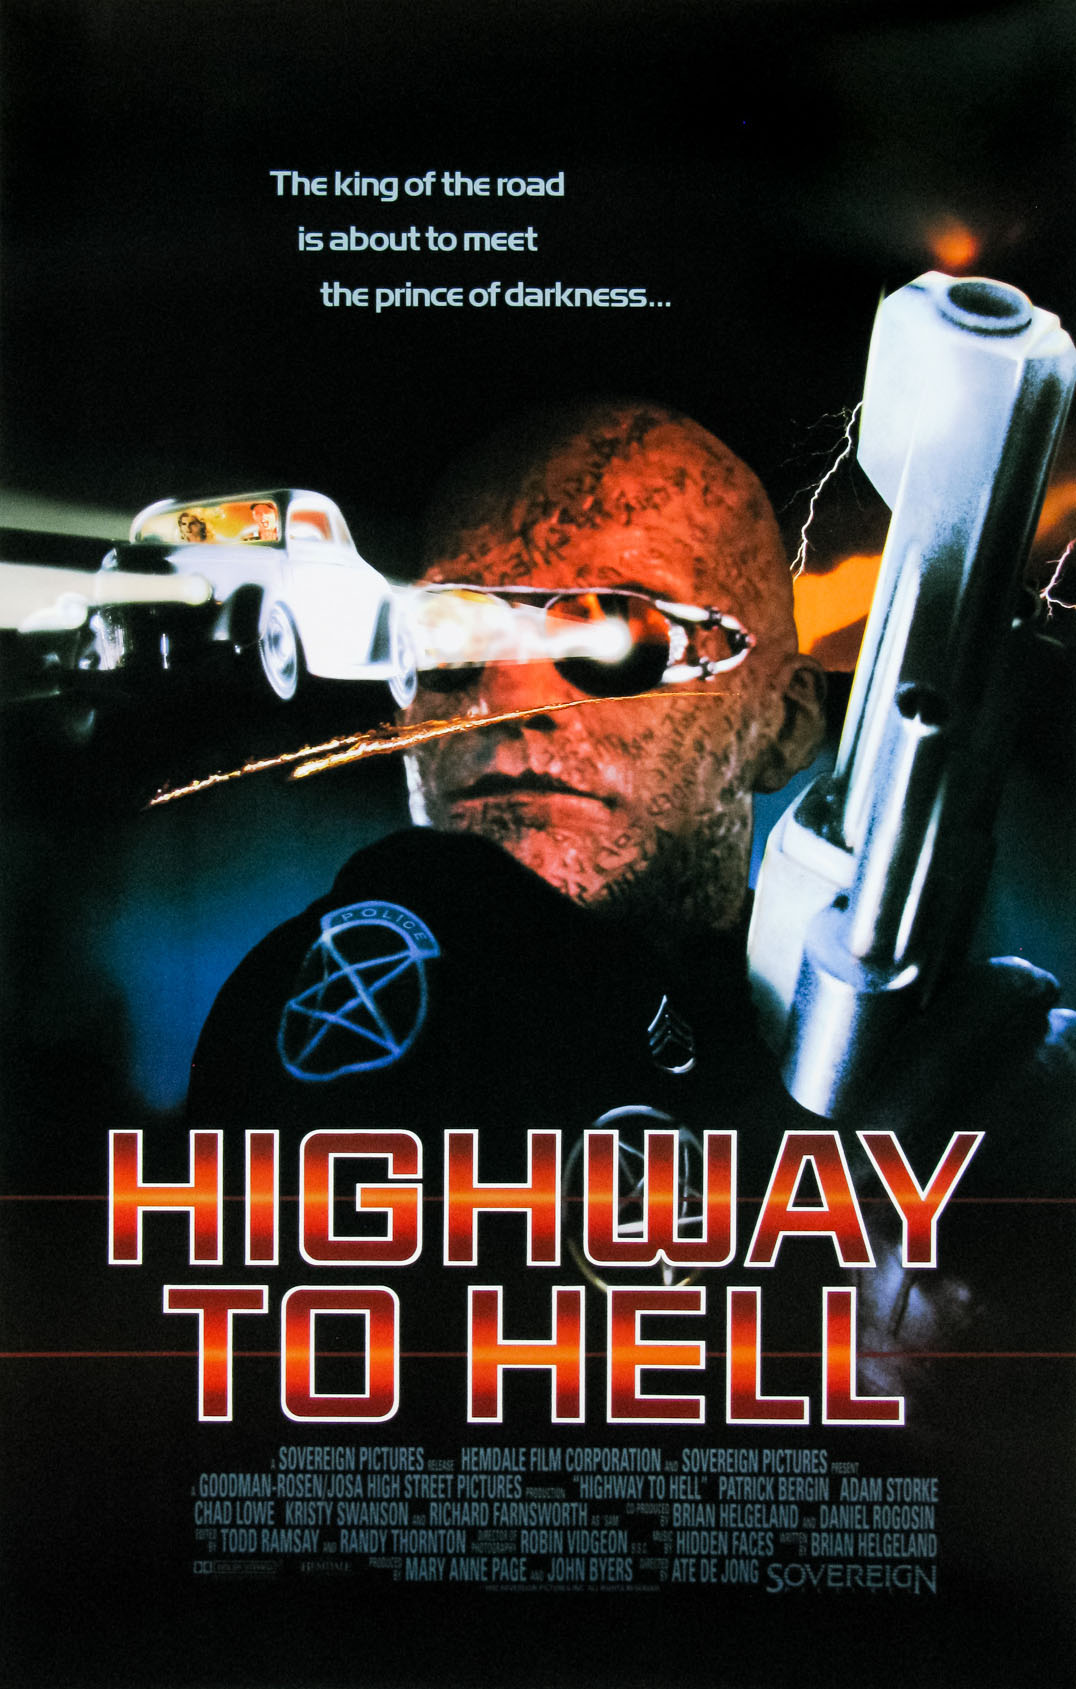 Highway.to.Hell.S01E01.HDTV.x264-W4F